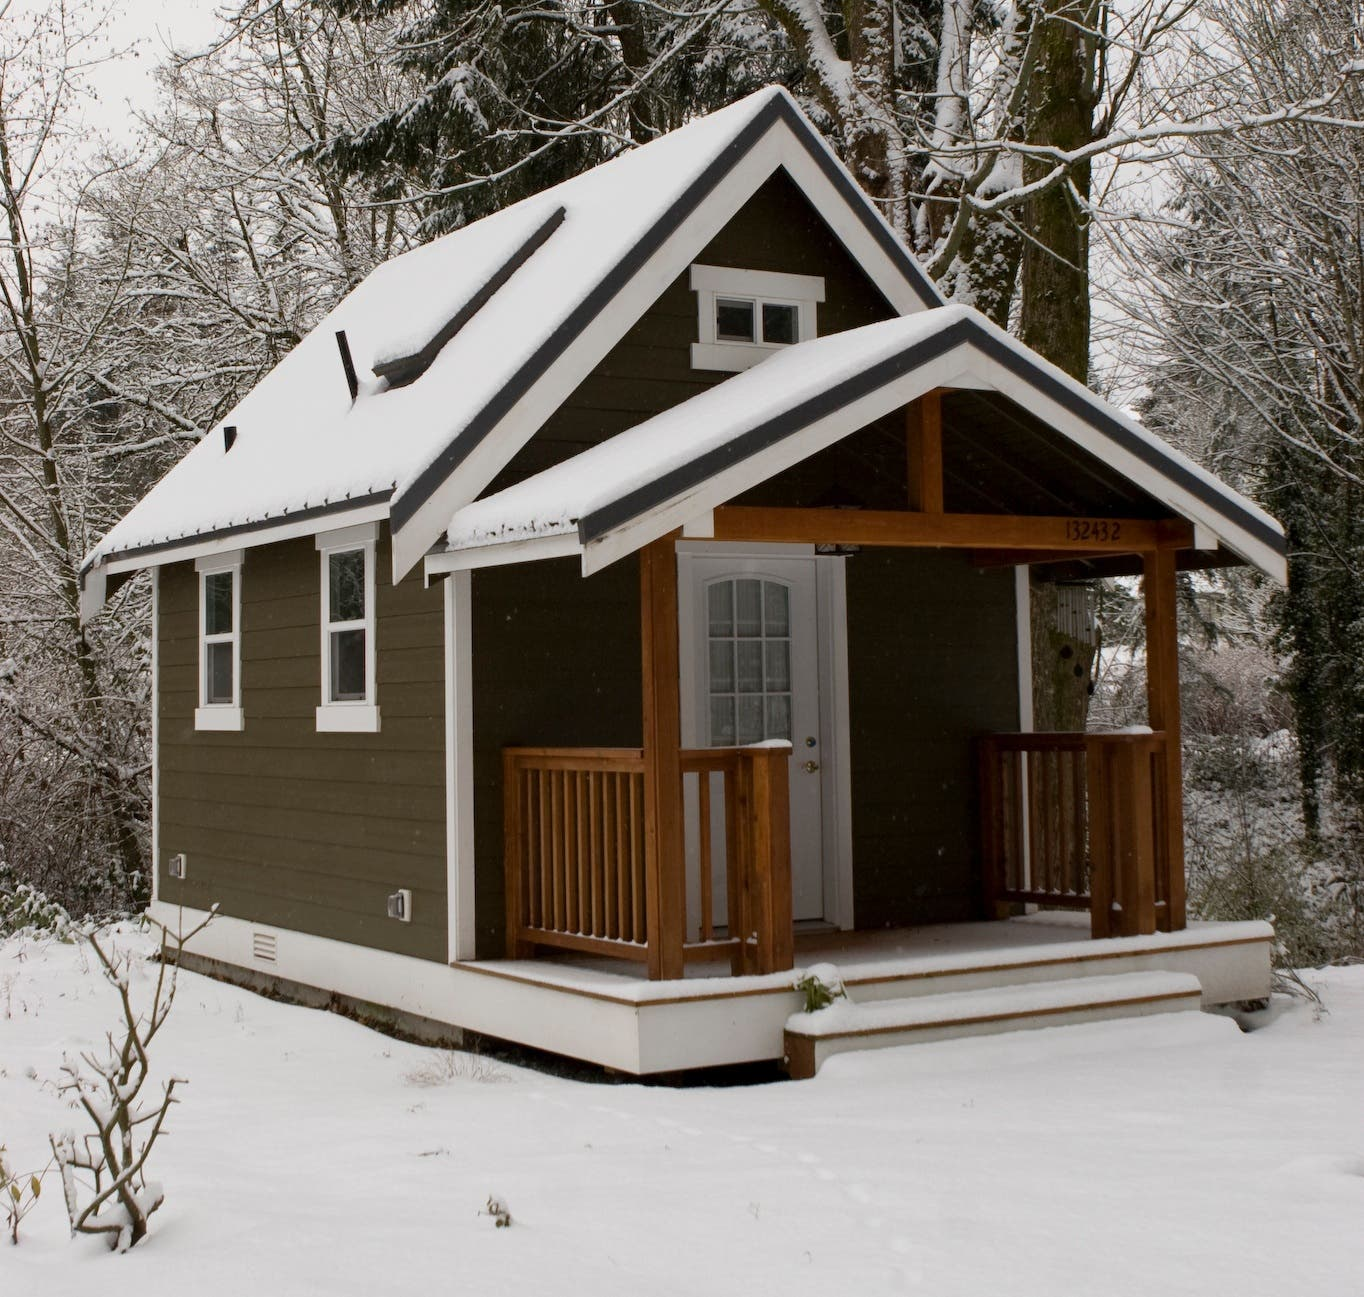 Magnificent Tiny House Articles Largest Home Design Picture Inspirations Pitcheantrous